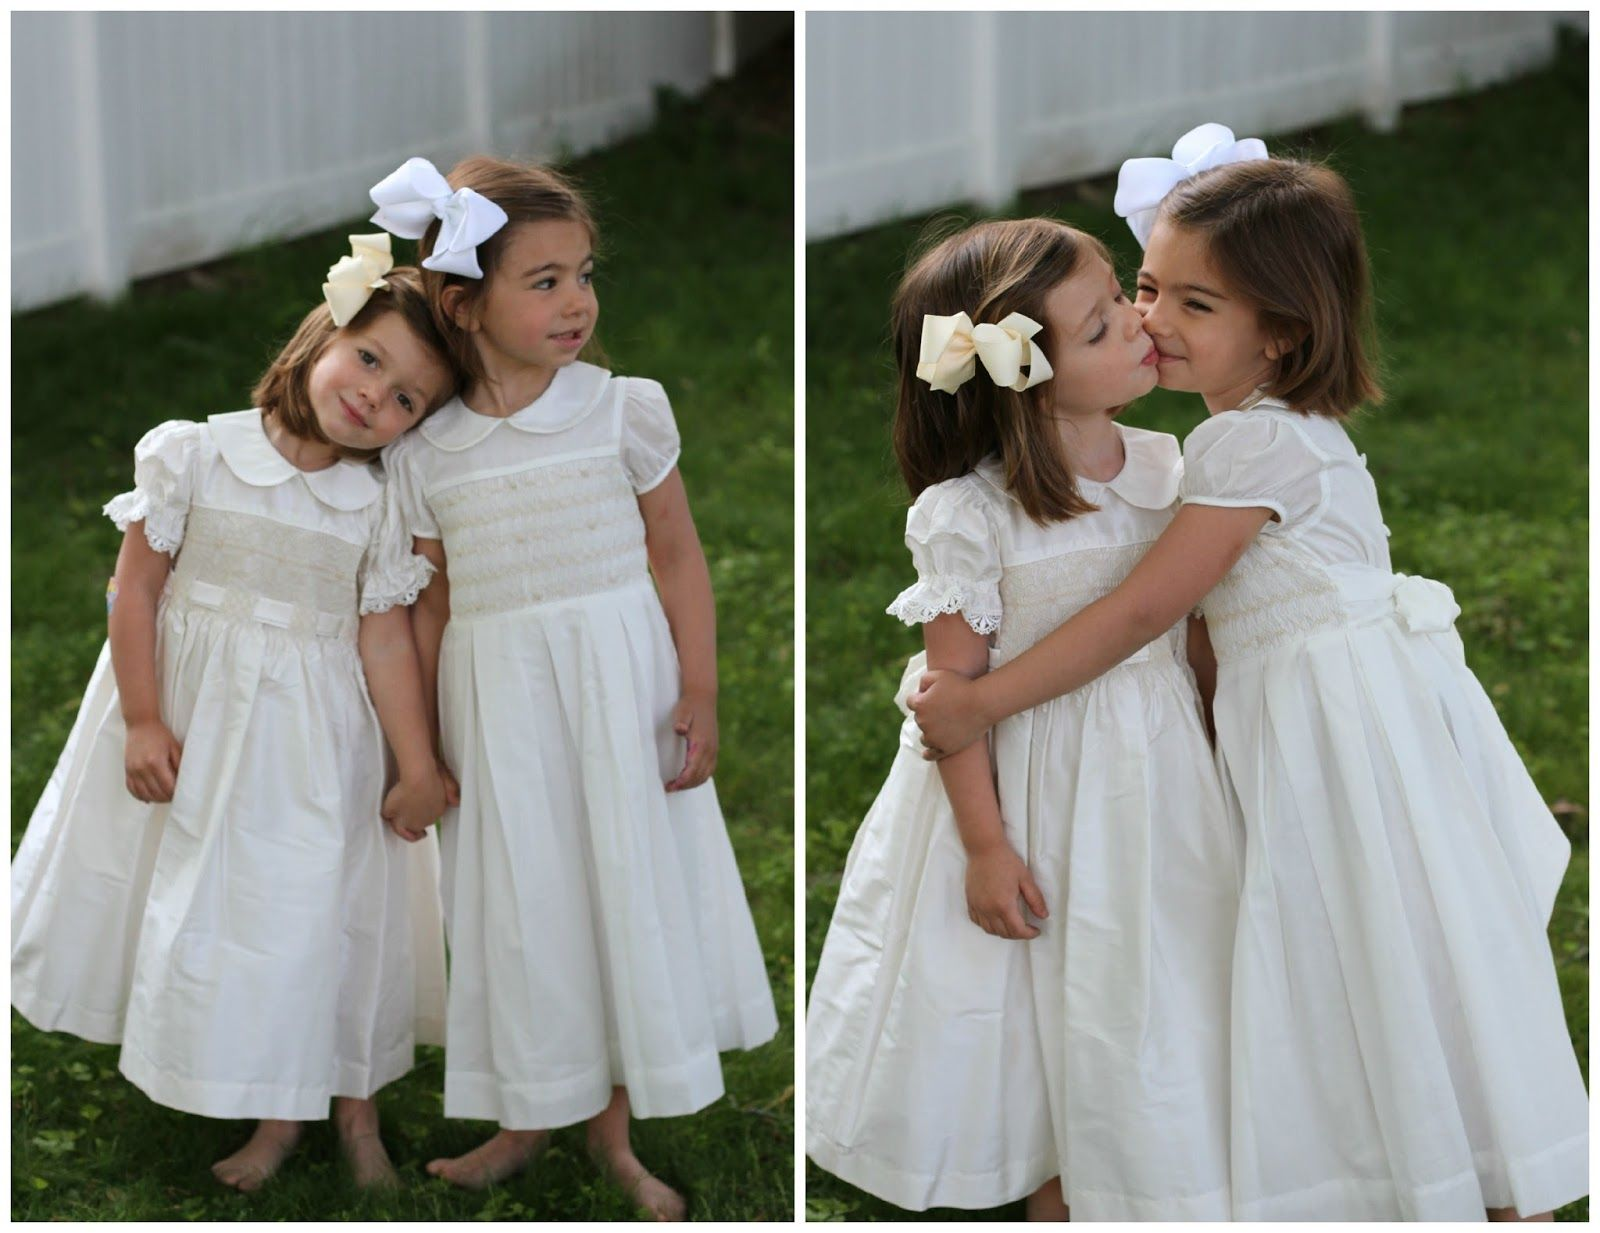 Silk or cotton flower girl dresses, decisions, decisions ...